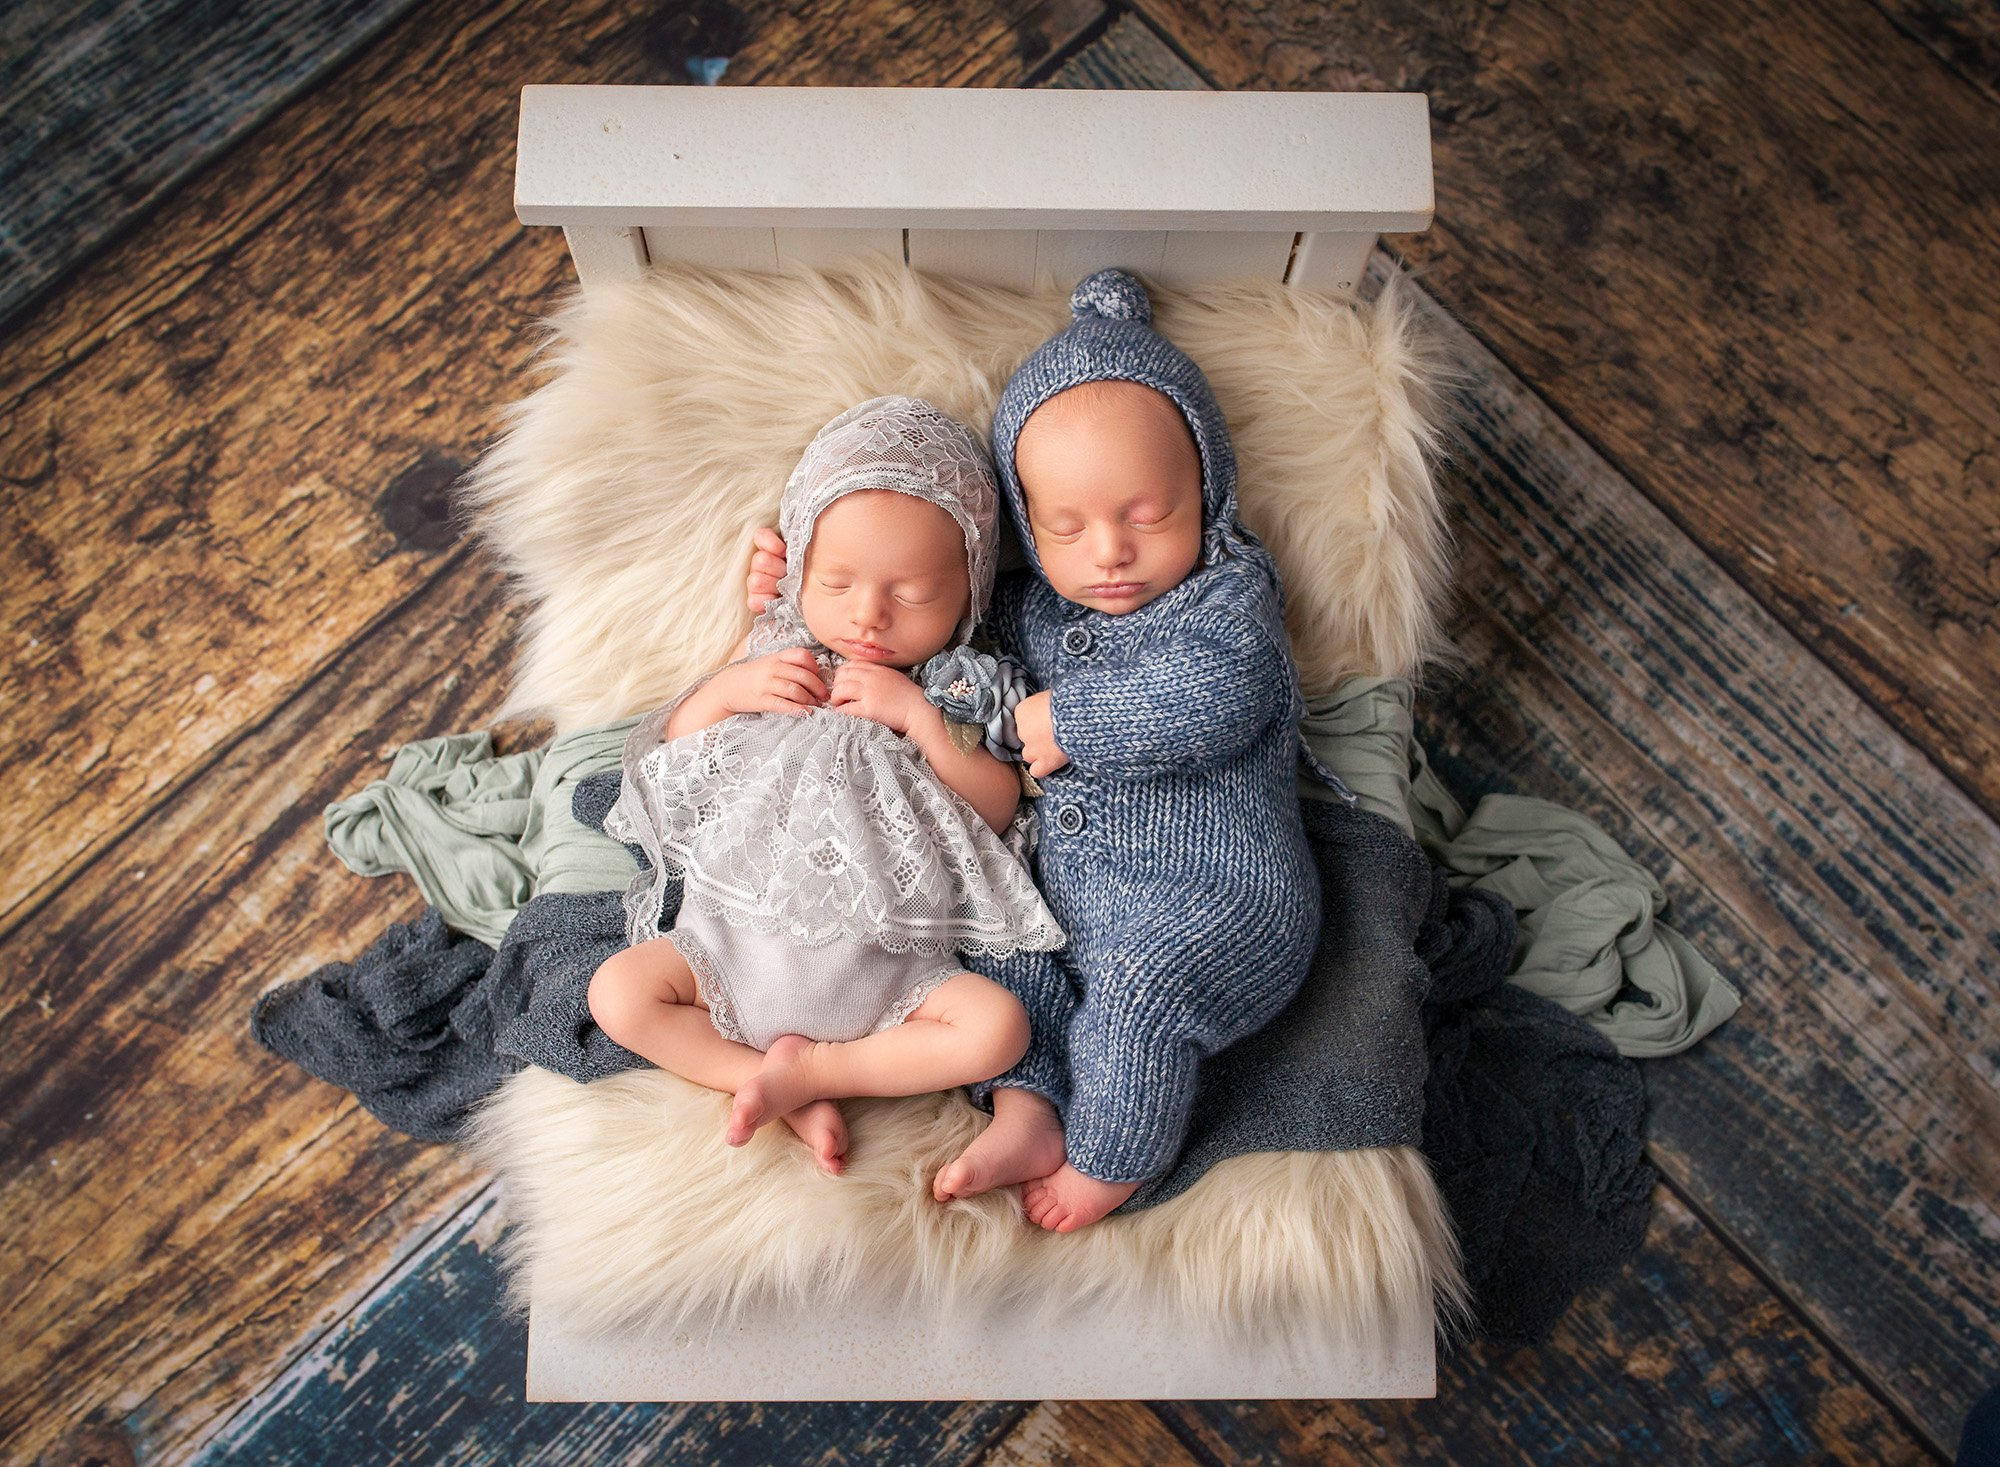 Twins newborn photography newborn twin boy and girl laying asleep next to each other on a miniature white bed with blankets